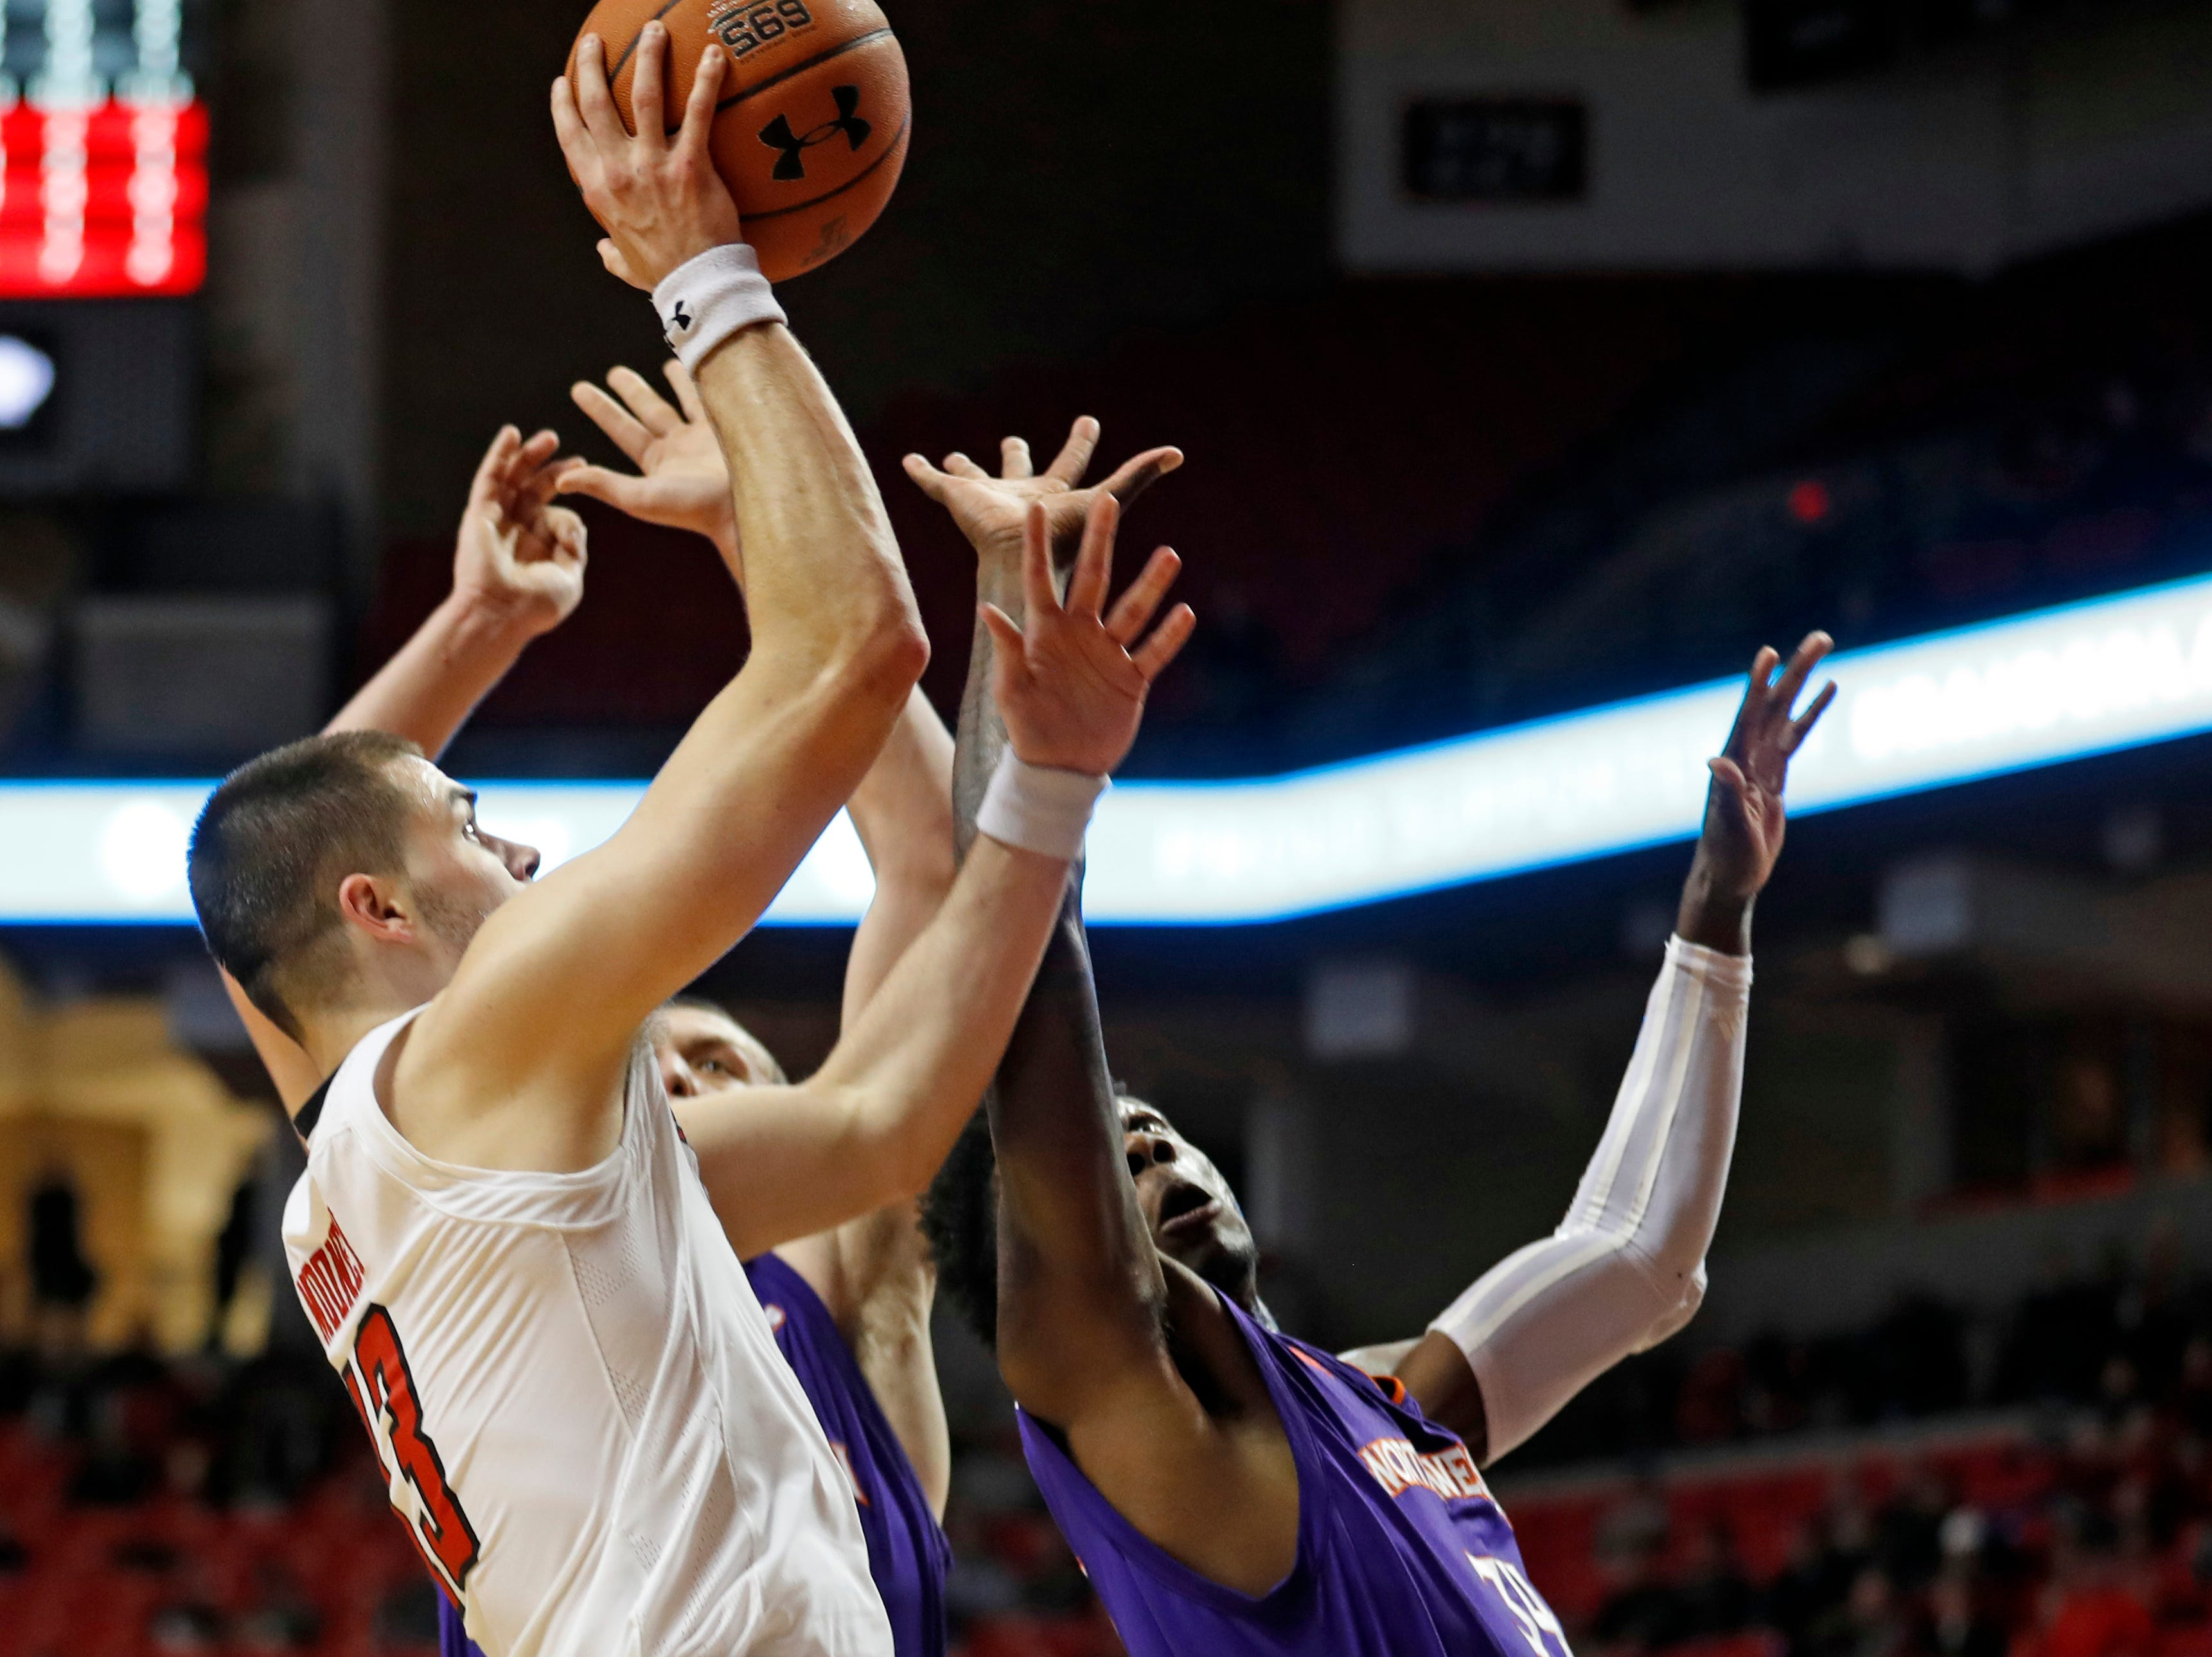 Texas Tech's Matt Mooney (13) shoots the ball during the second half of an NCAA college basketball game against Northwestern State, Wednesday, Dec. 12, 2018, in Lubbock, Texas. (AP Photo/Brad Tollefson)